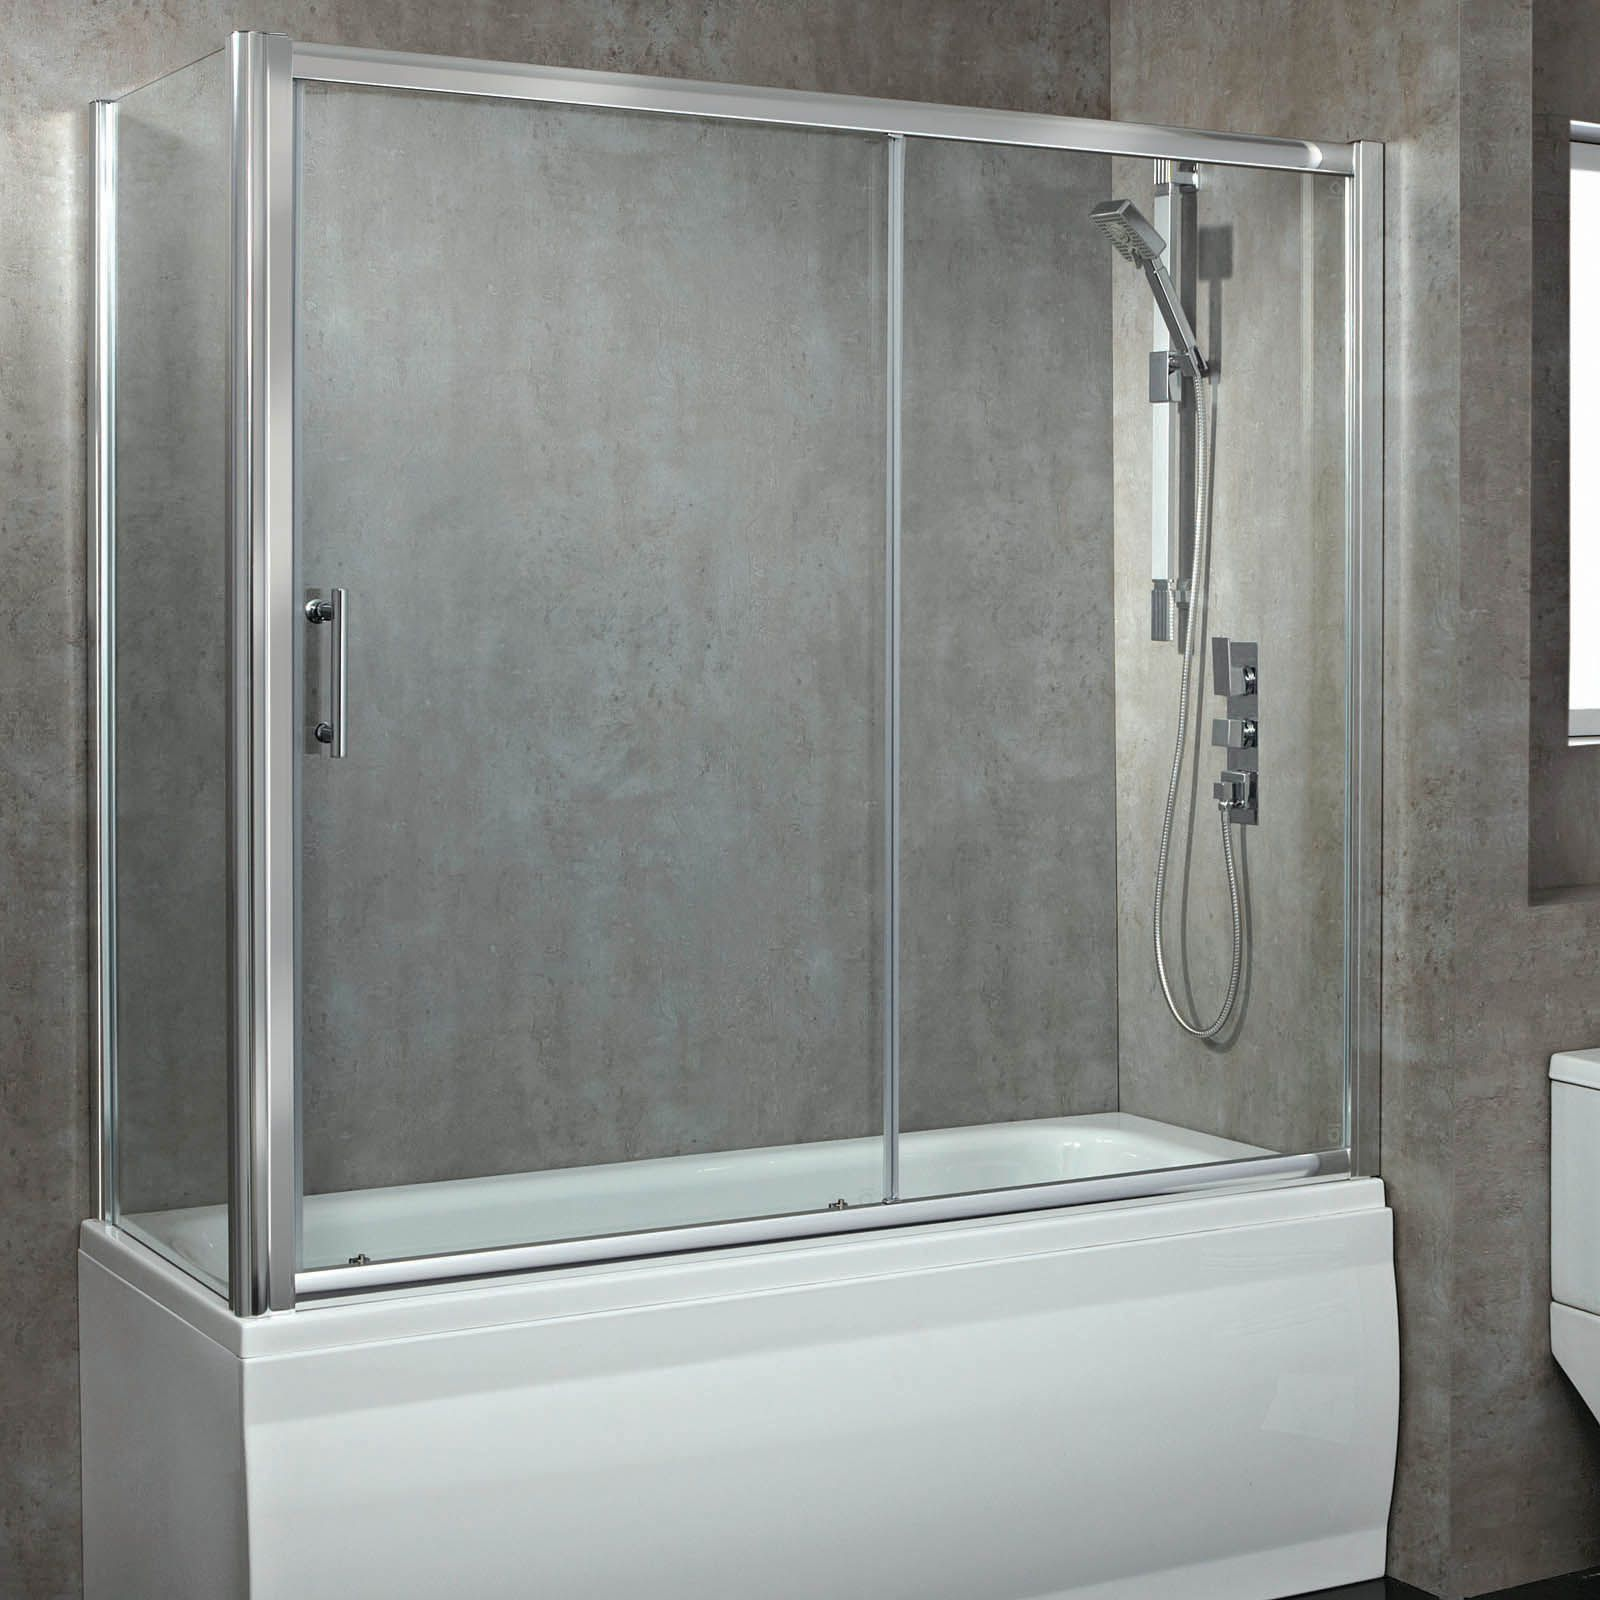 Phoenix Glass Sliding Over Bath Enclosed Shower Screen Bathtub Doors Decor Ideasdecor Ideas